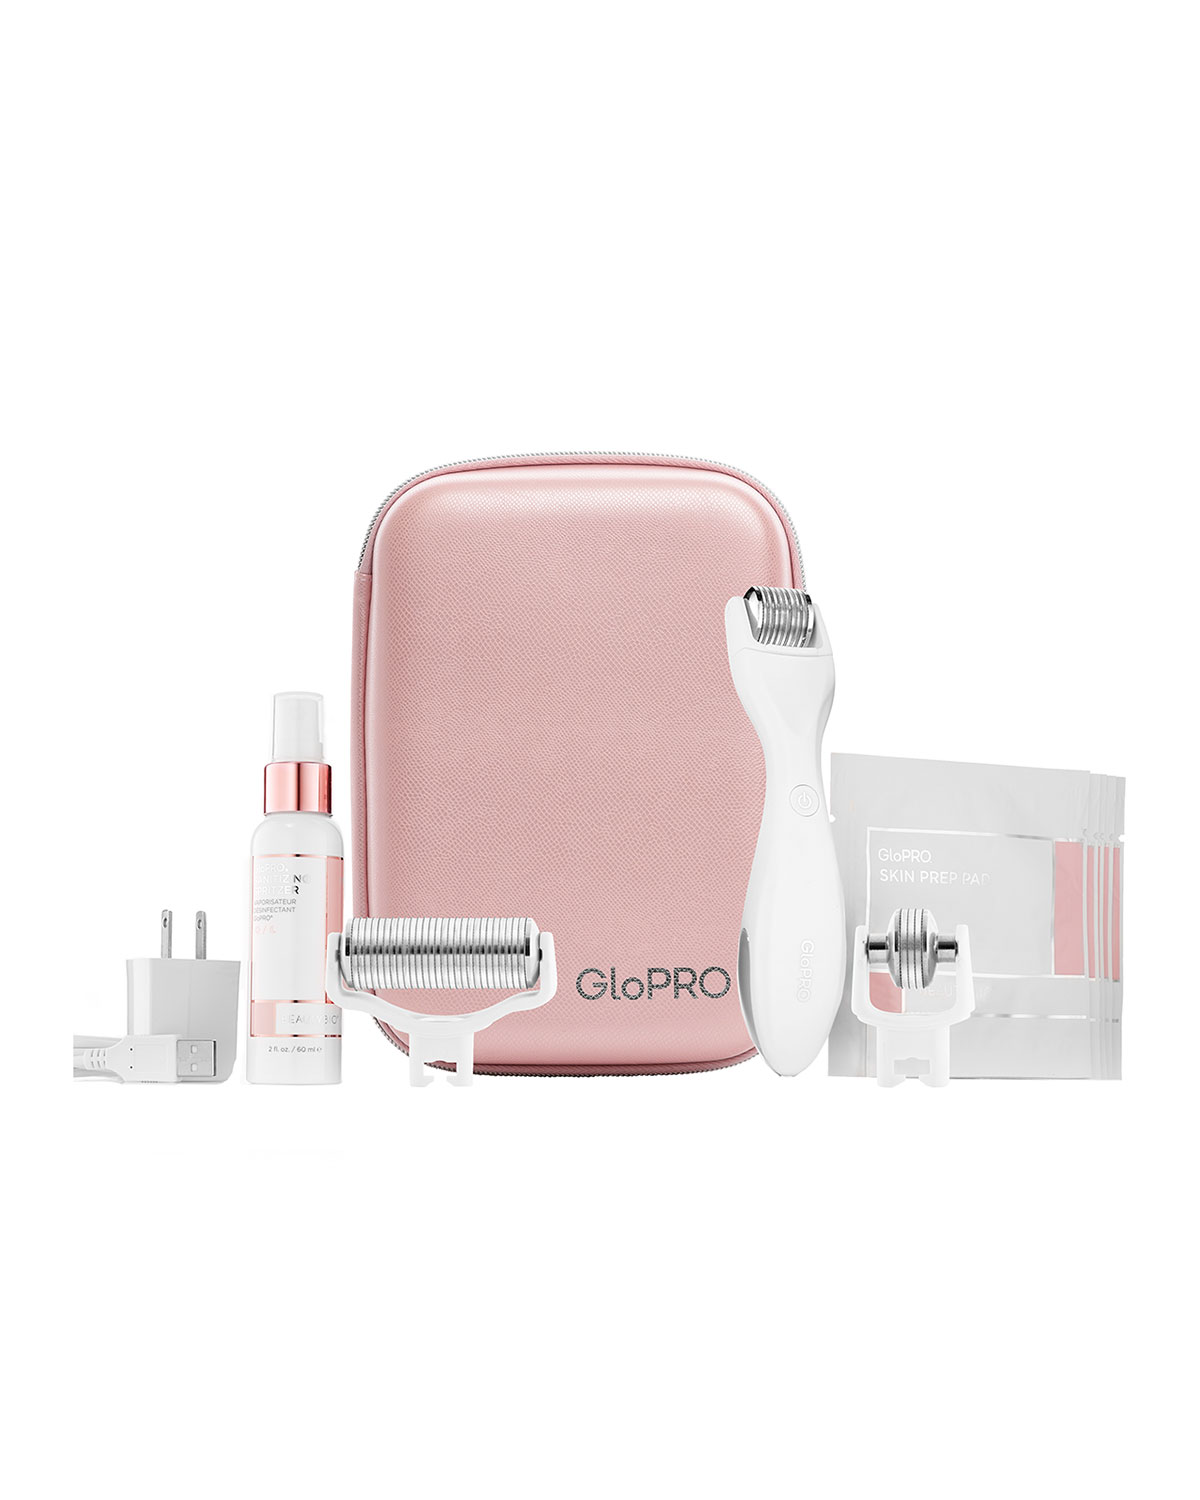 BeautyBio GloPRO Pack N' Glo Essentials Set ($309 Value)